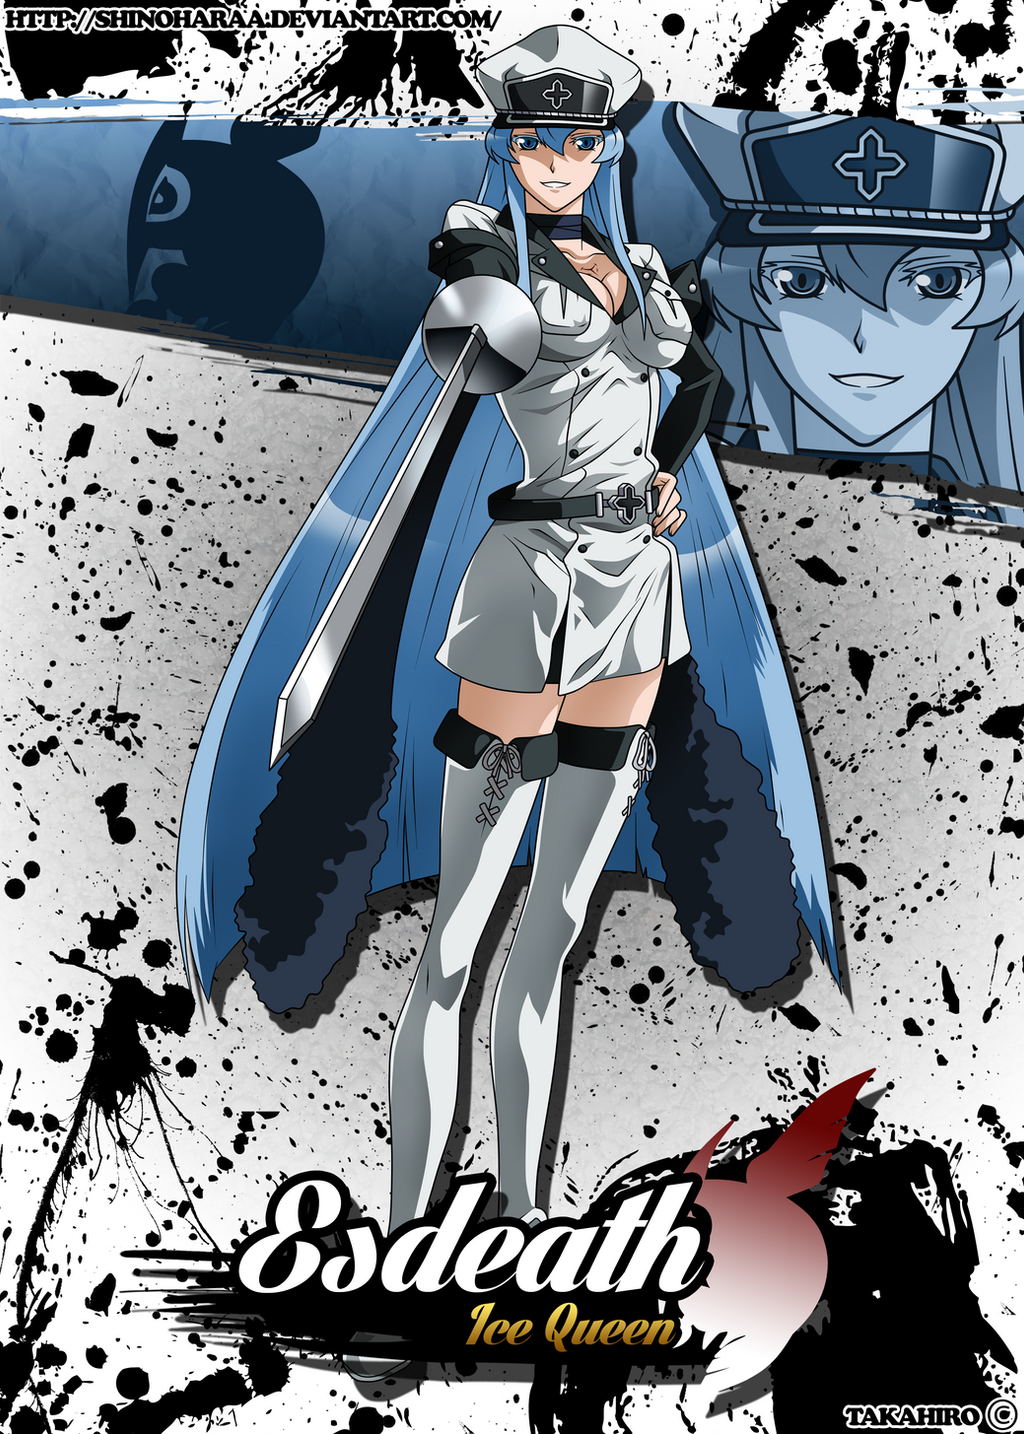 In Law Unit Esdeath By Shinoharaa On Deviantart